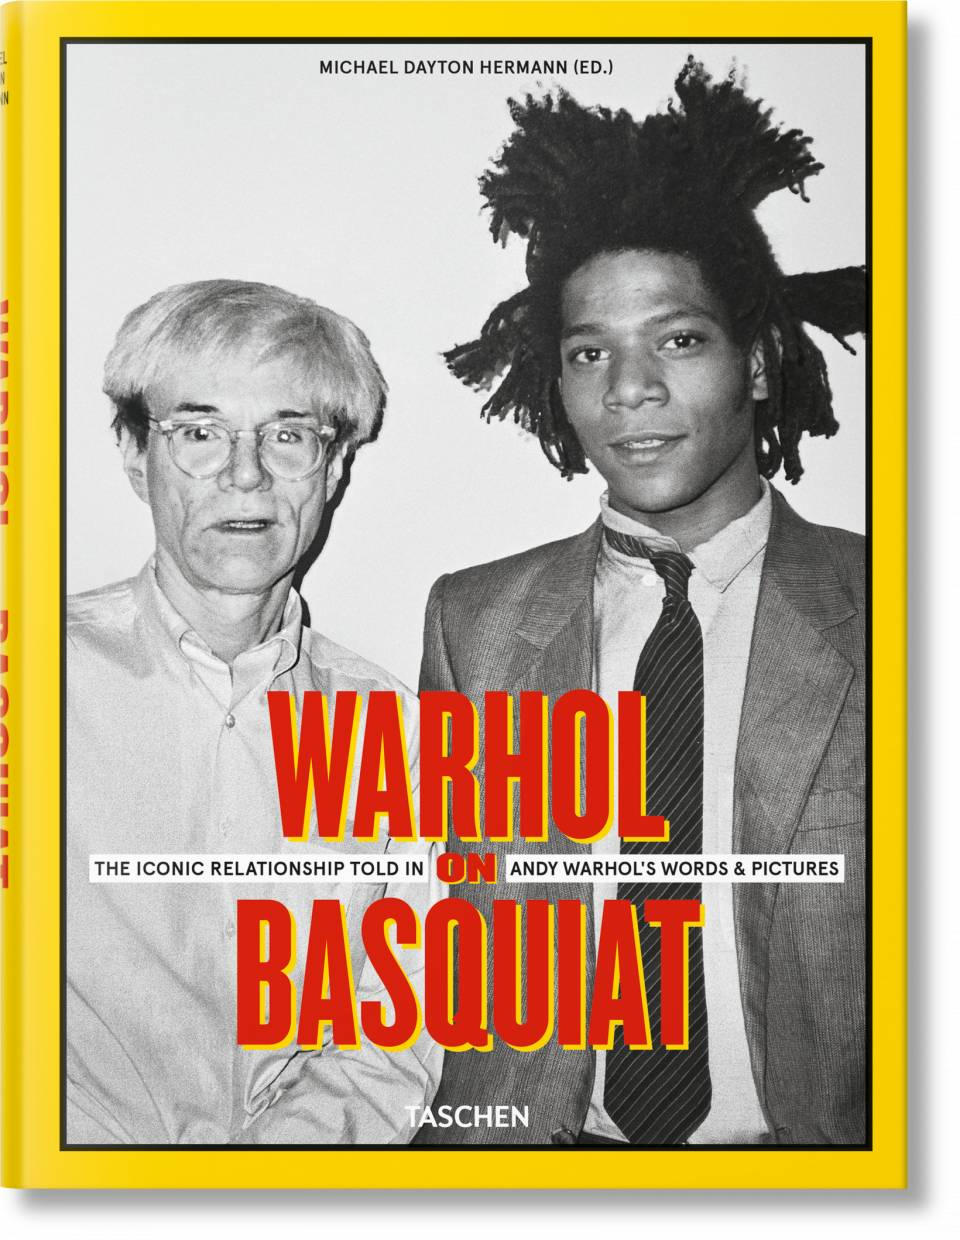 Warhol on Basquiat. The Iconic Relationship Told in Andy Warhol's Words and Pictures - image 1